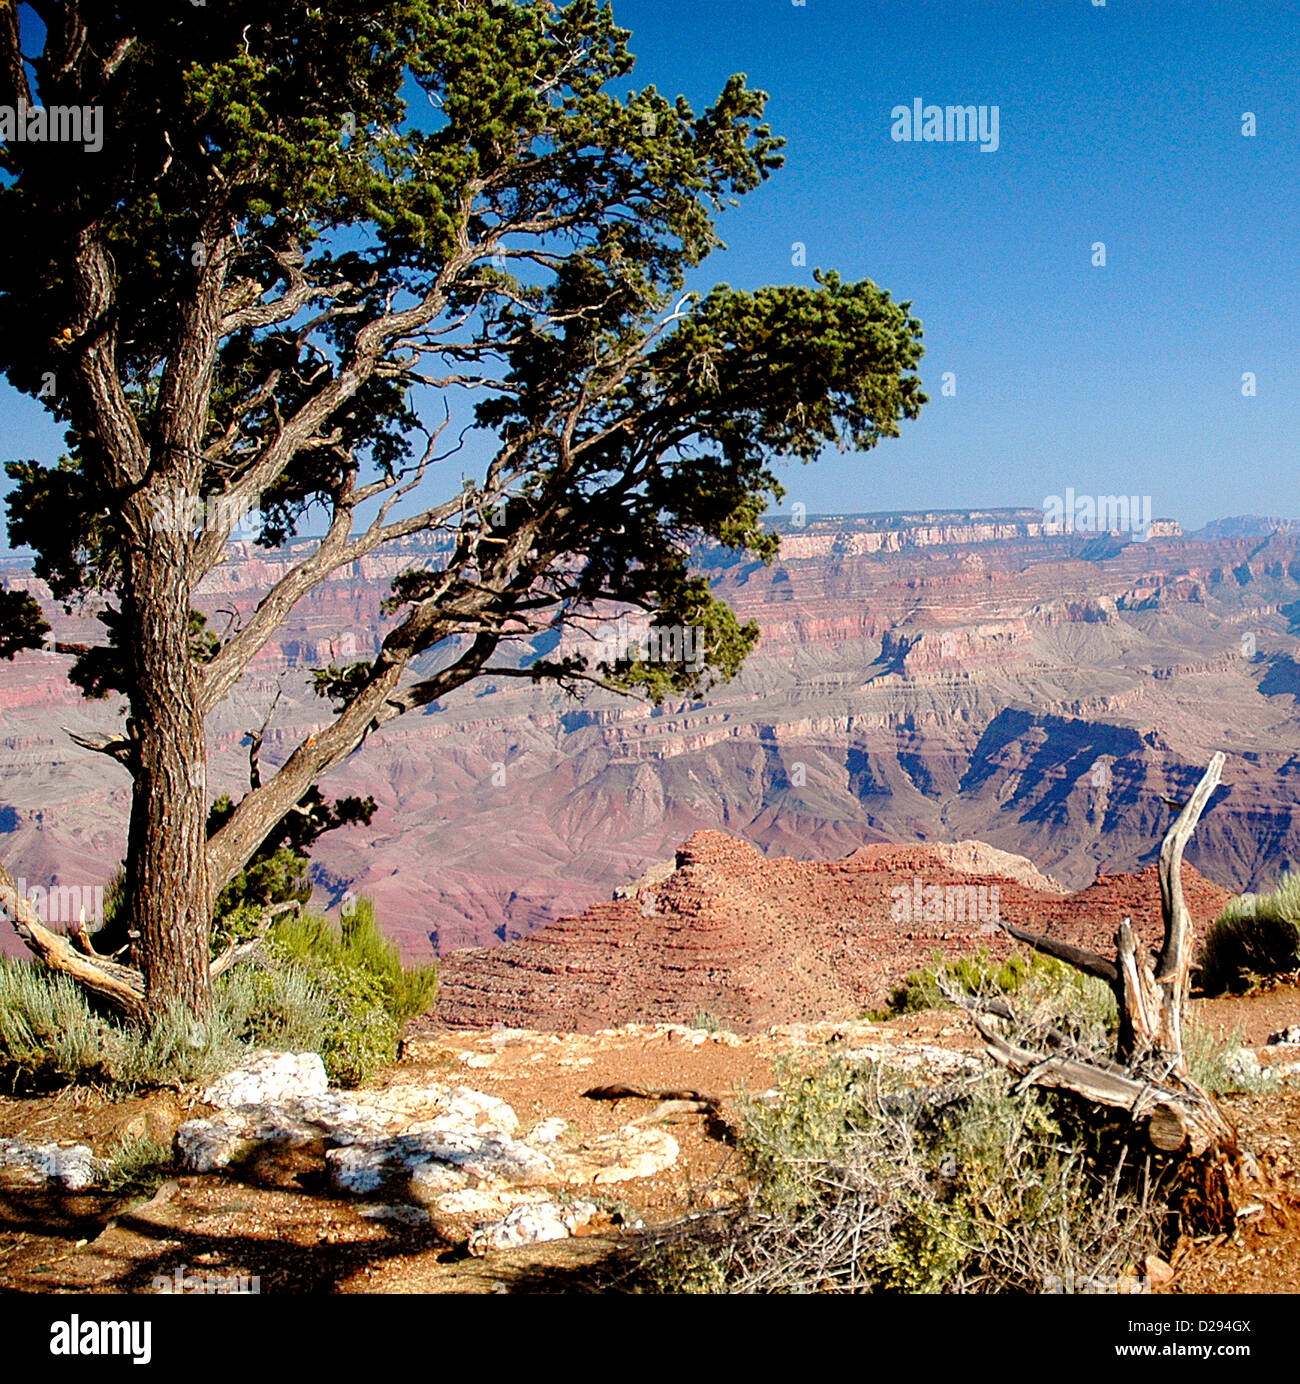 Grand Canyon National Park, Arizona, USA - Stock Image